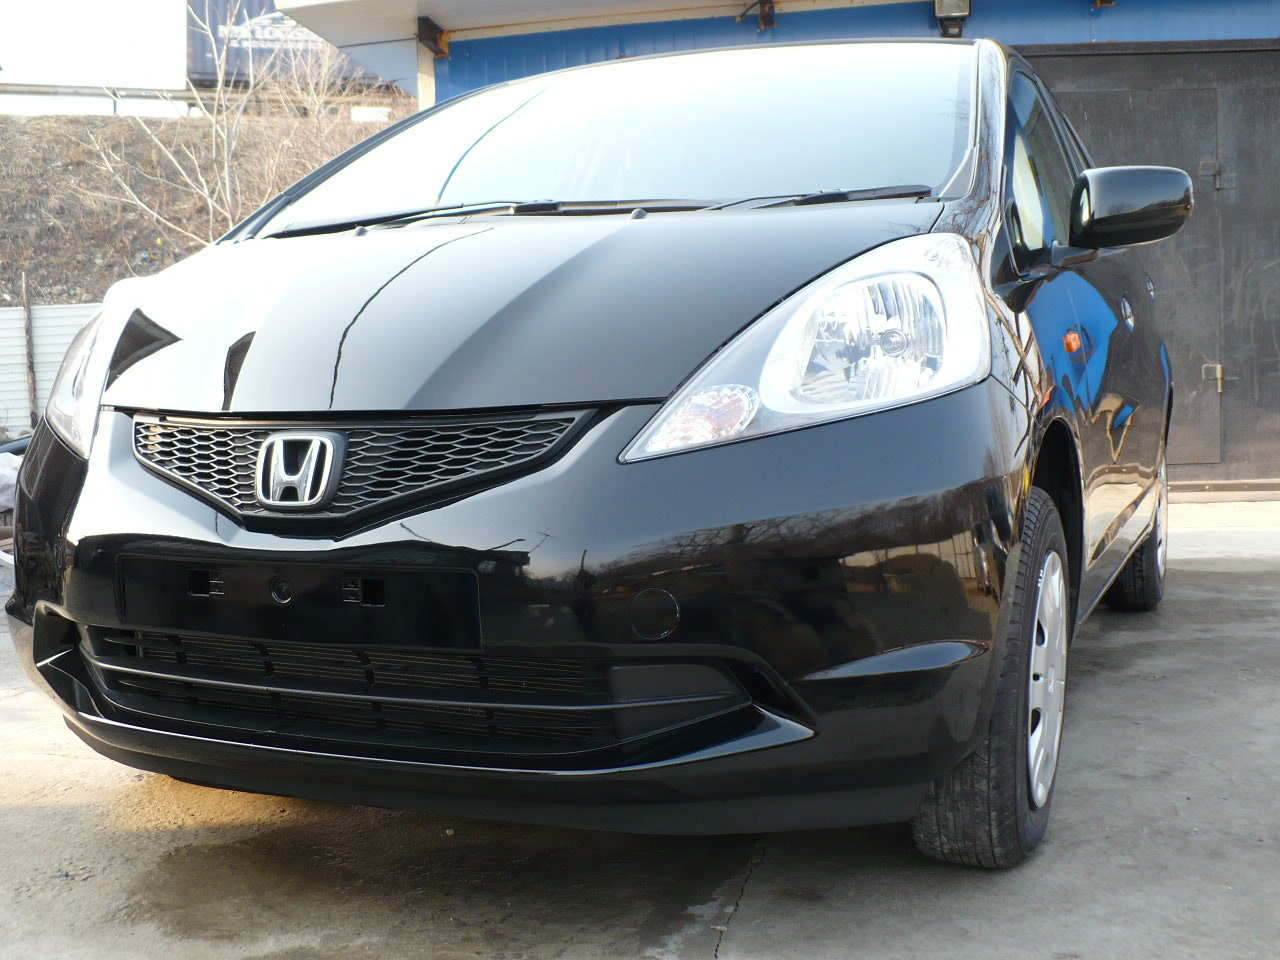 used 2009 honda fit photos 1331cc gasoline ff automatic for sale. Black Bedroom Furniture Sets. Home Design Ideas